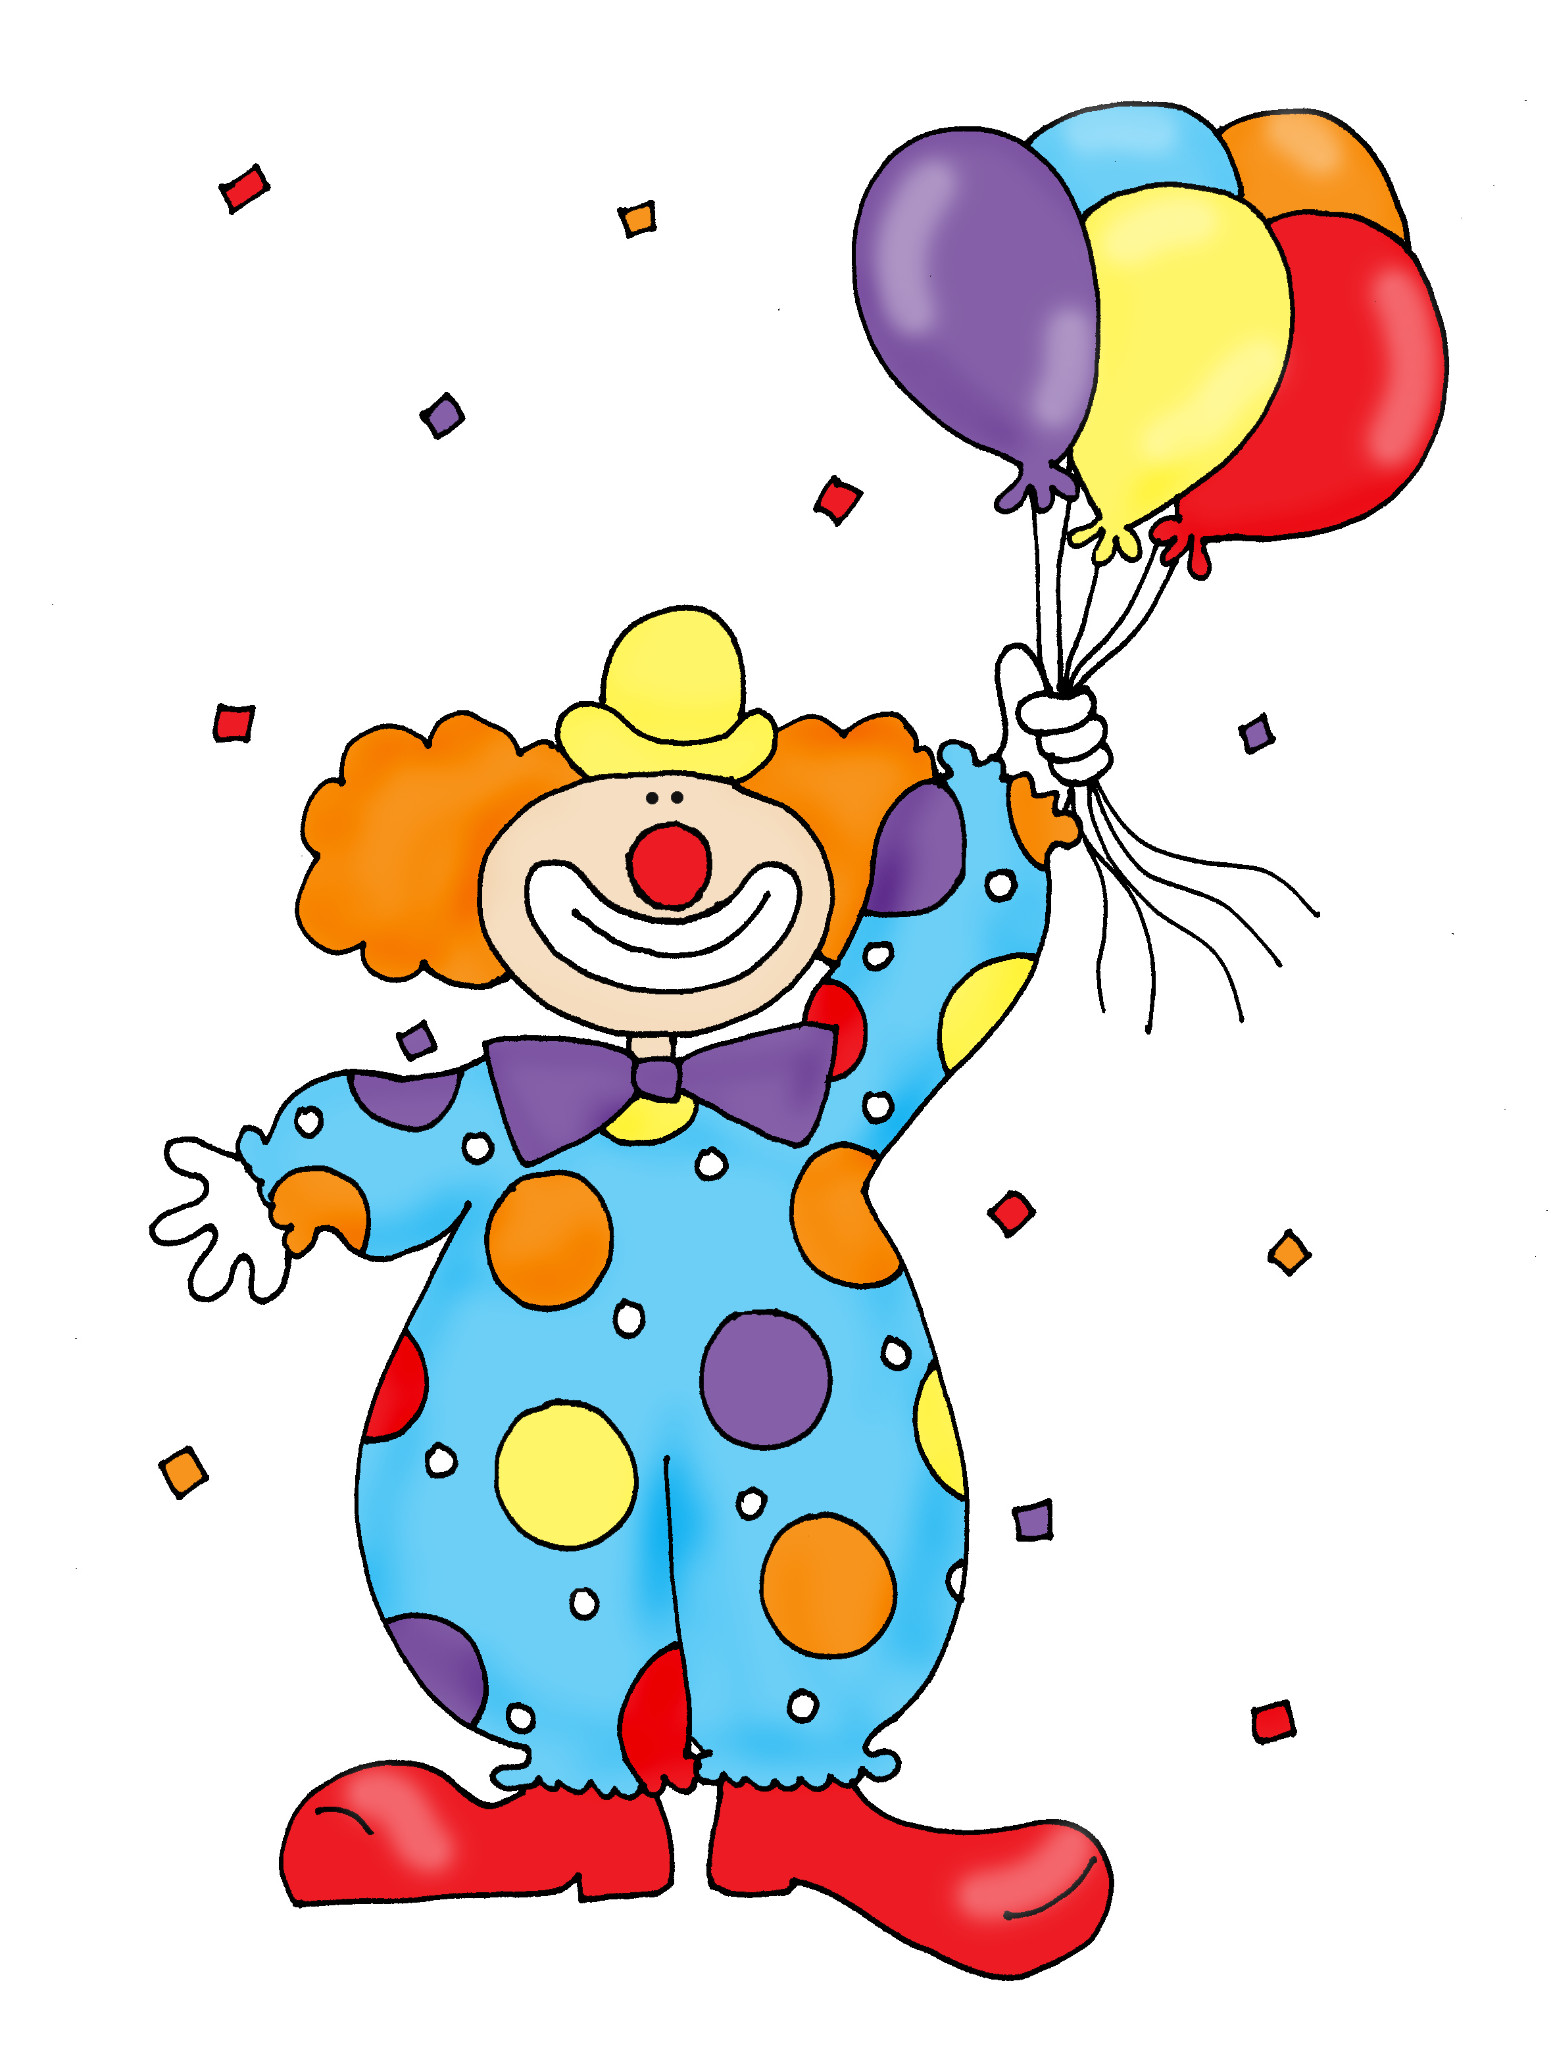 Free Clown Cliparts, Download Free Clip Art, Free Clip Art.